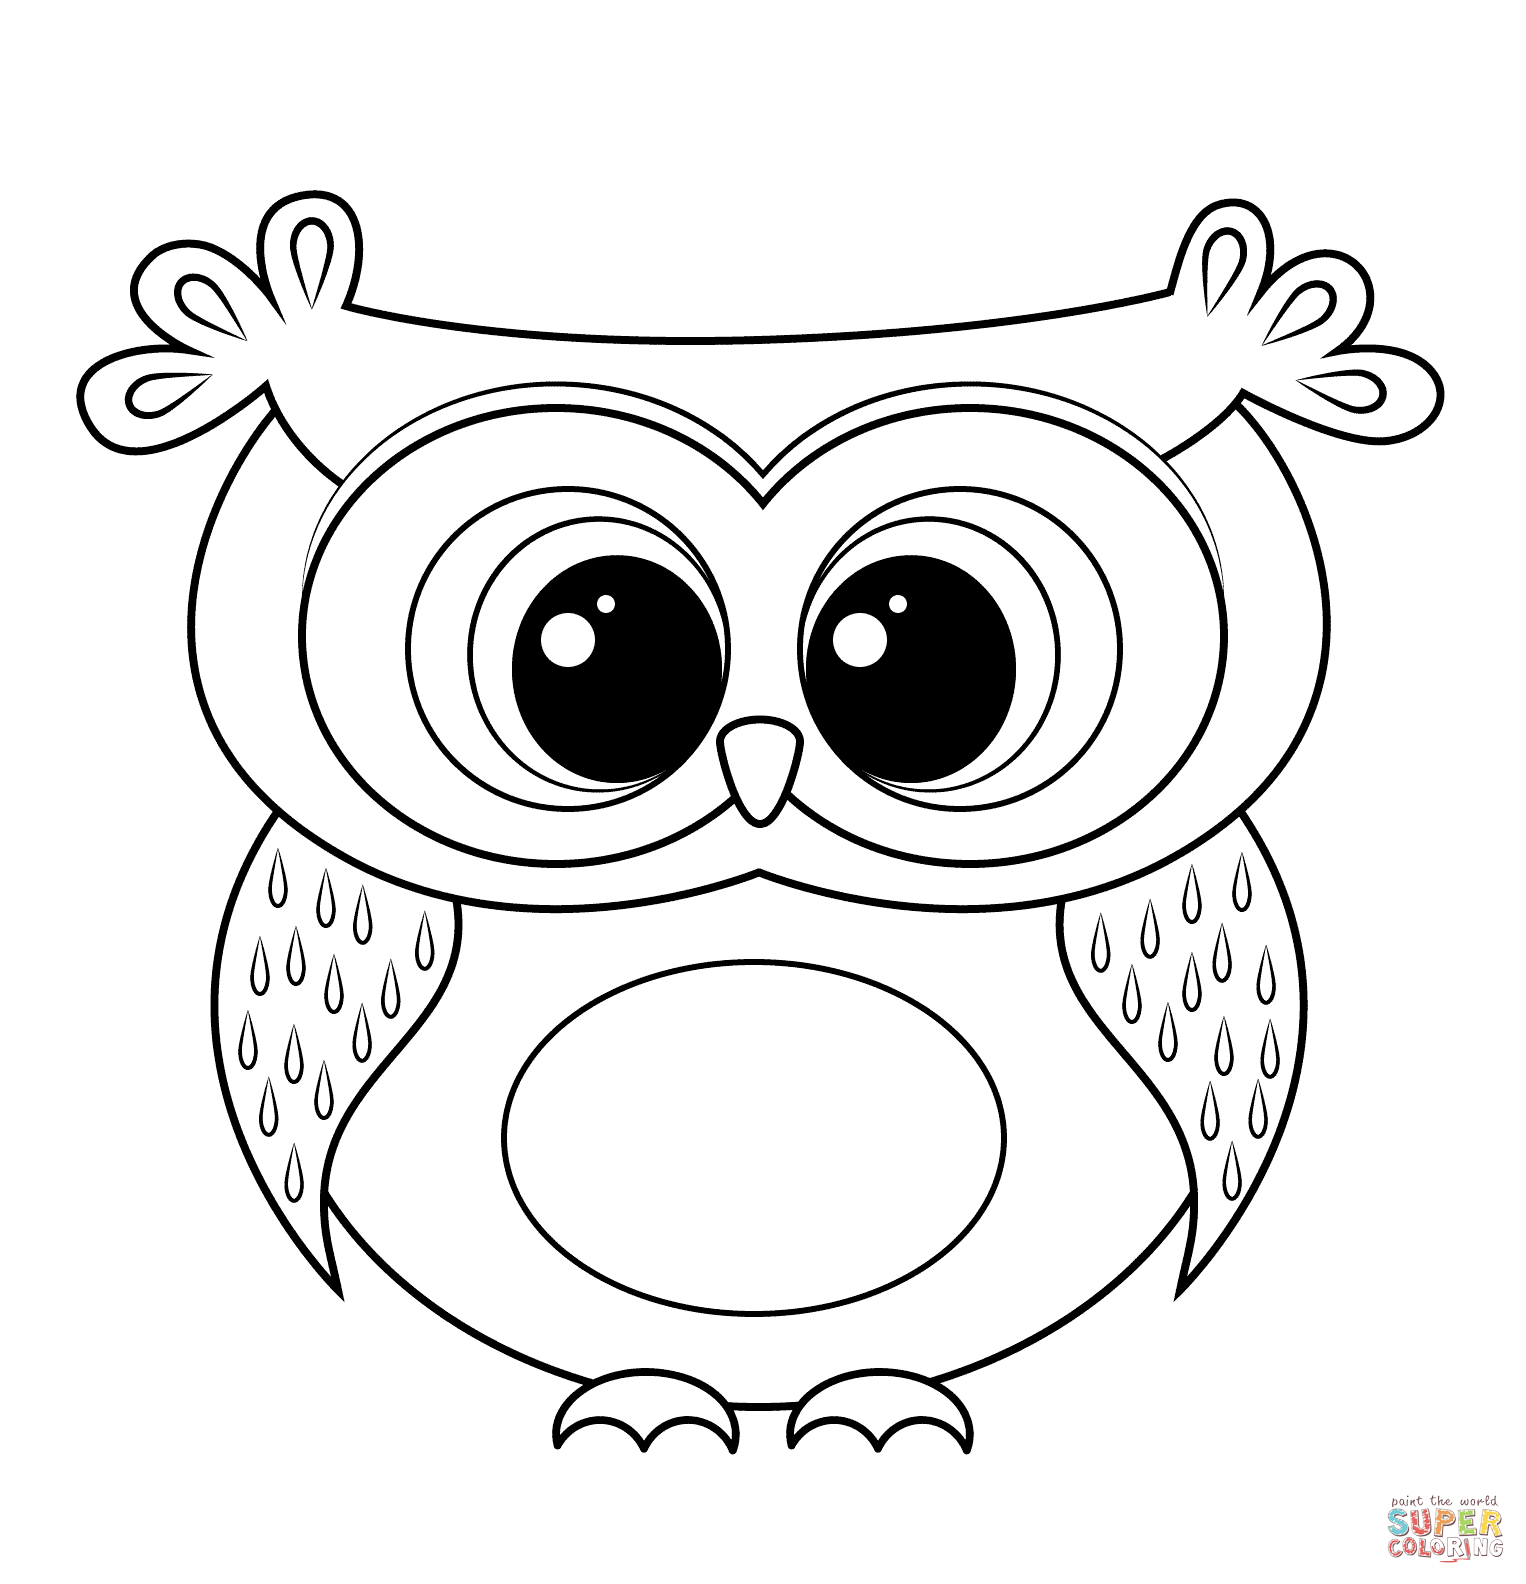 barn owl coloring pages printable cartoon owl coloring page free printable coloring pages barn printable owl pages coloring